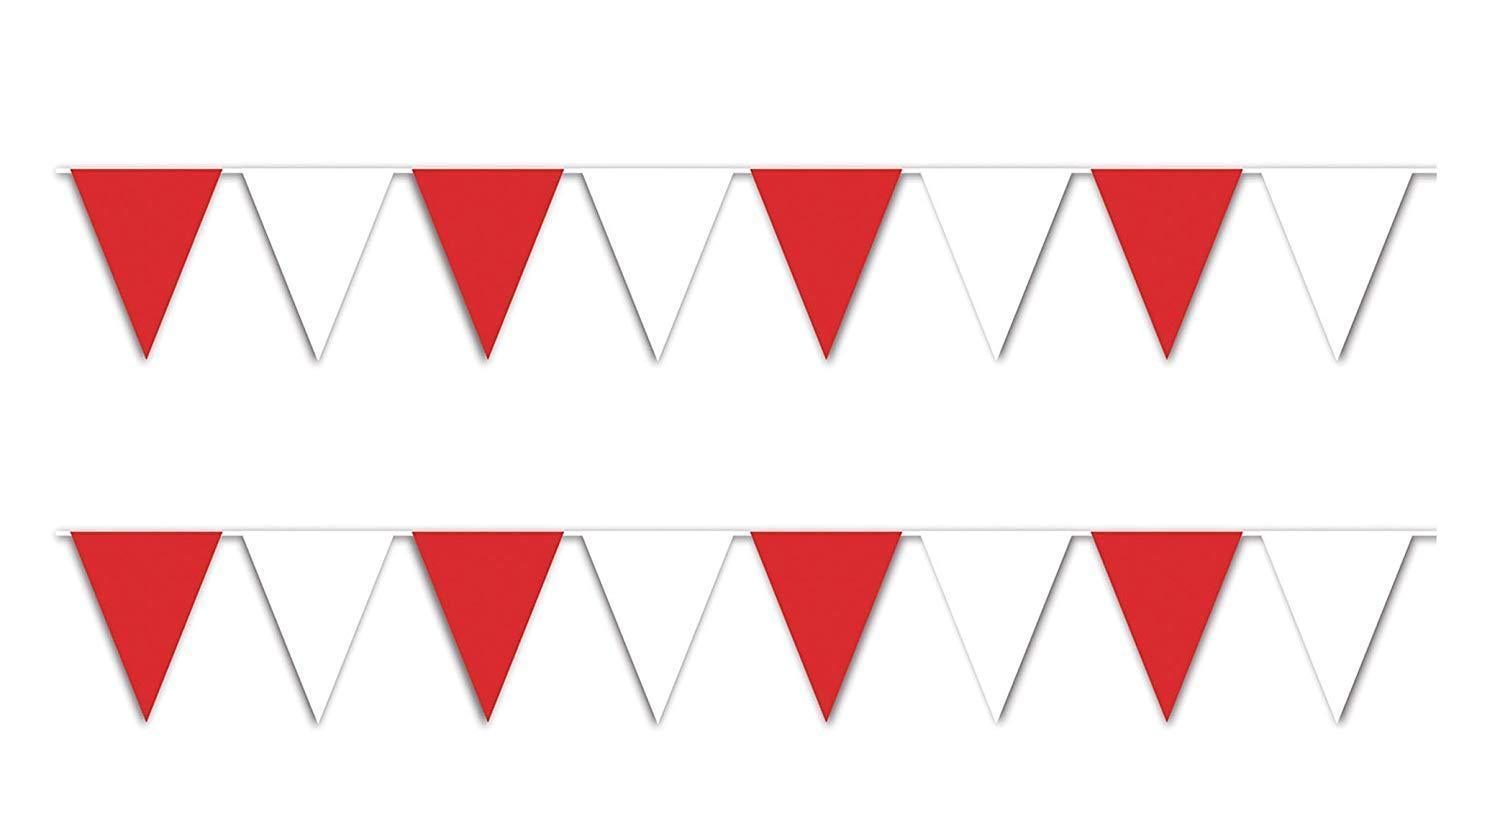 30 ft heavy duty Outdoor All Weather red white Pennant Banner flags decoration